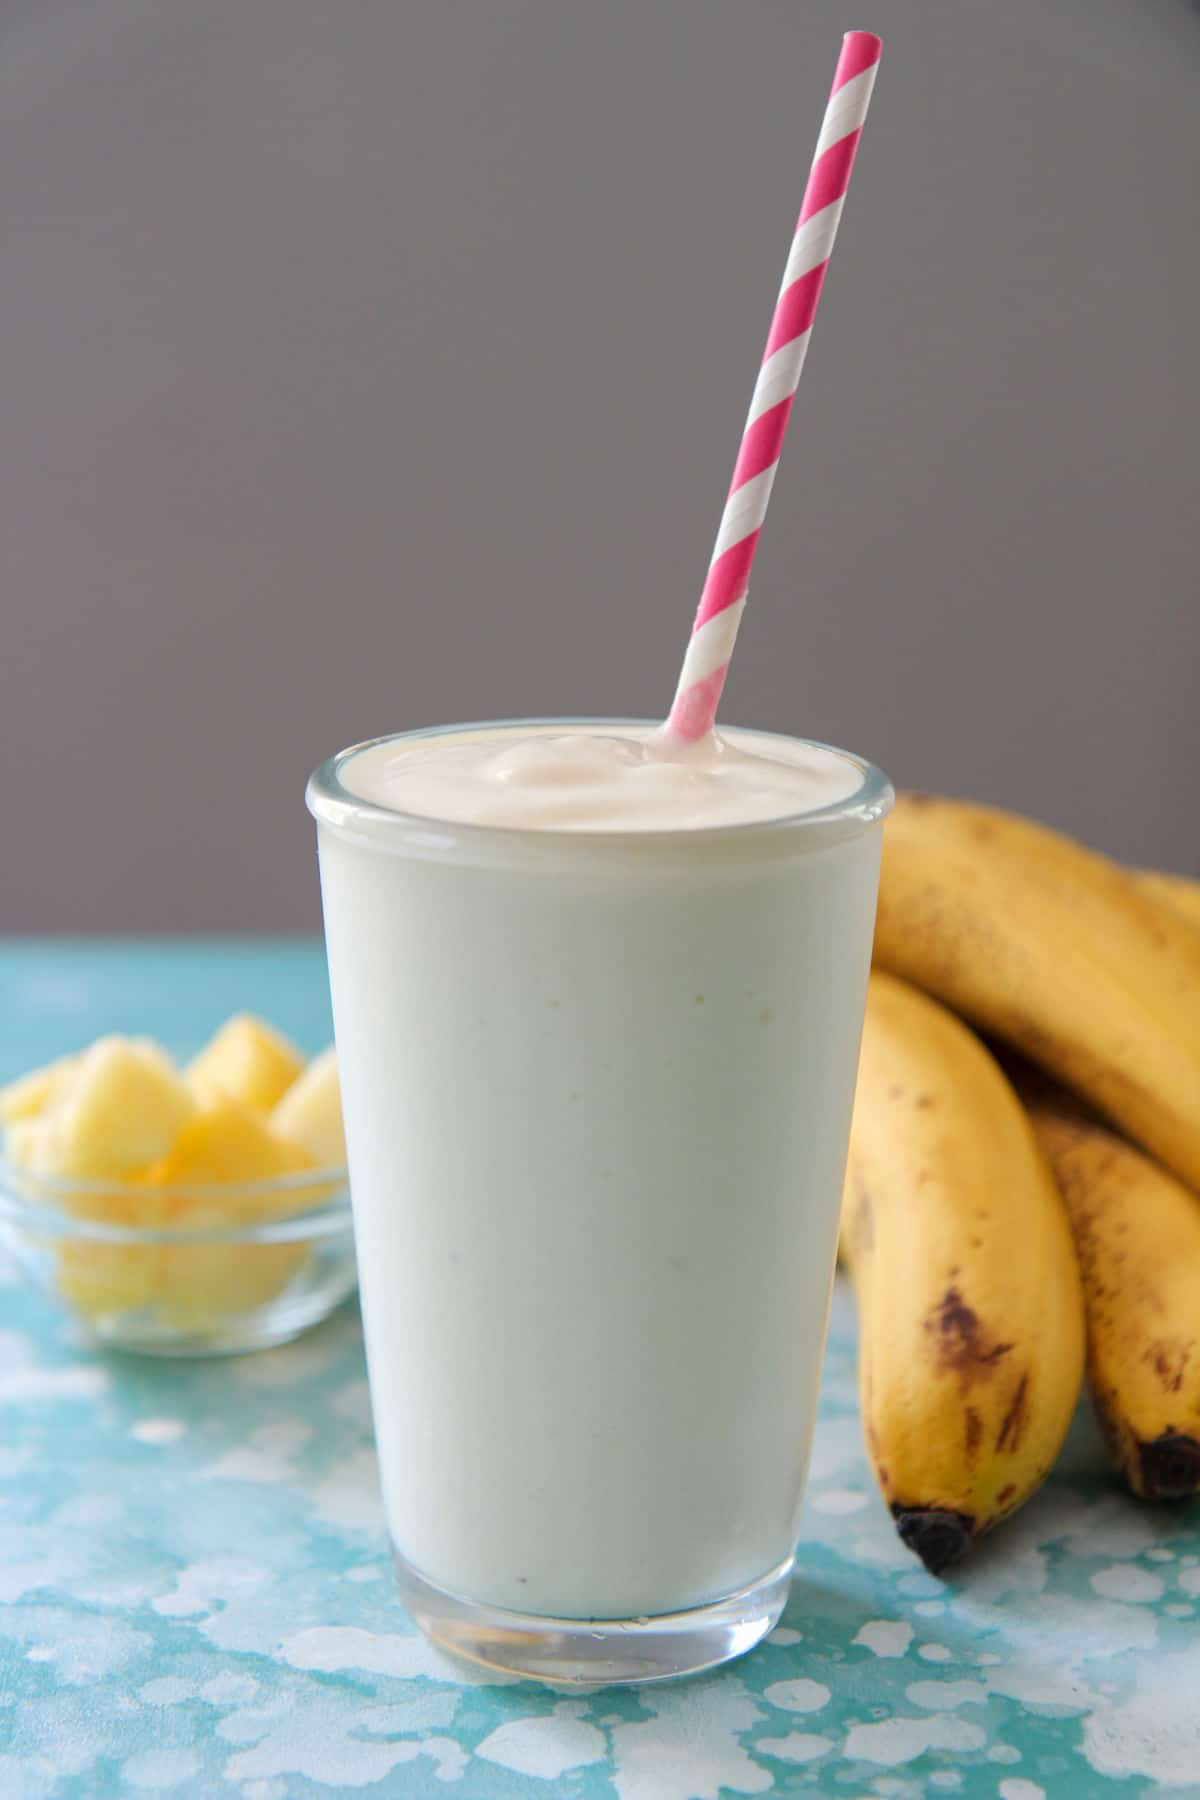 pineapple smoothie in a tall glass with a pink and white straw and bananas and pineapples in the background.